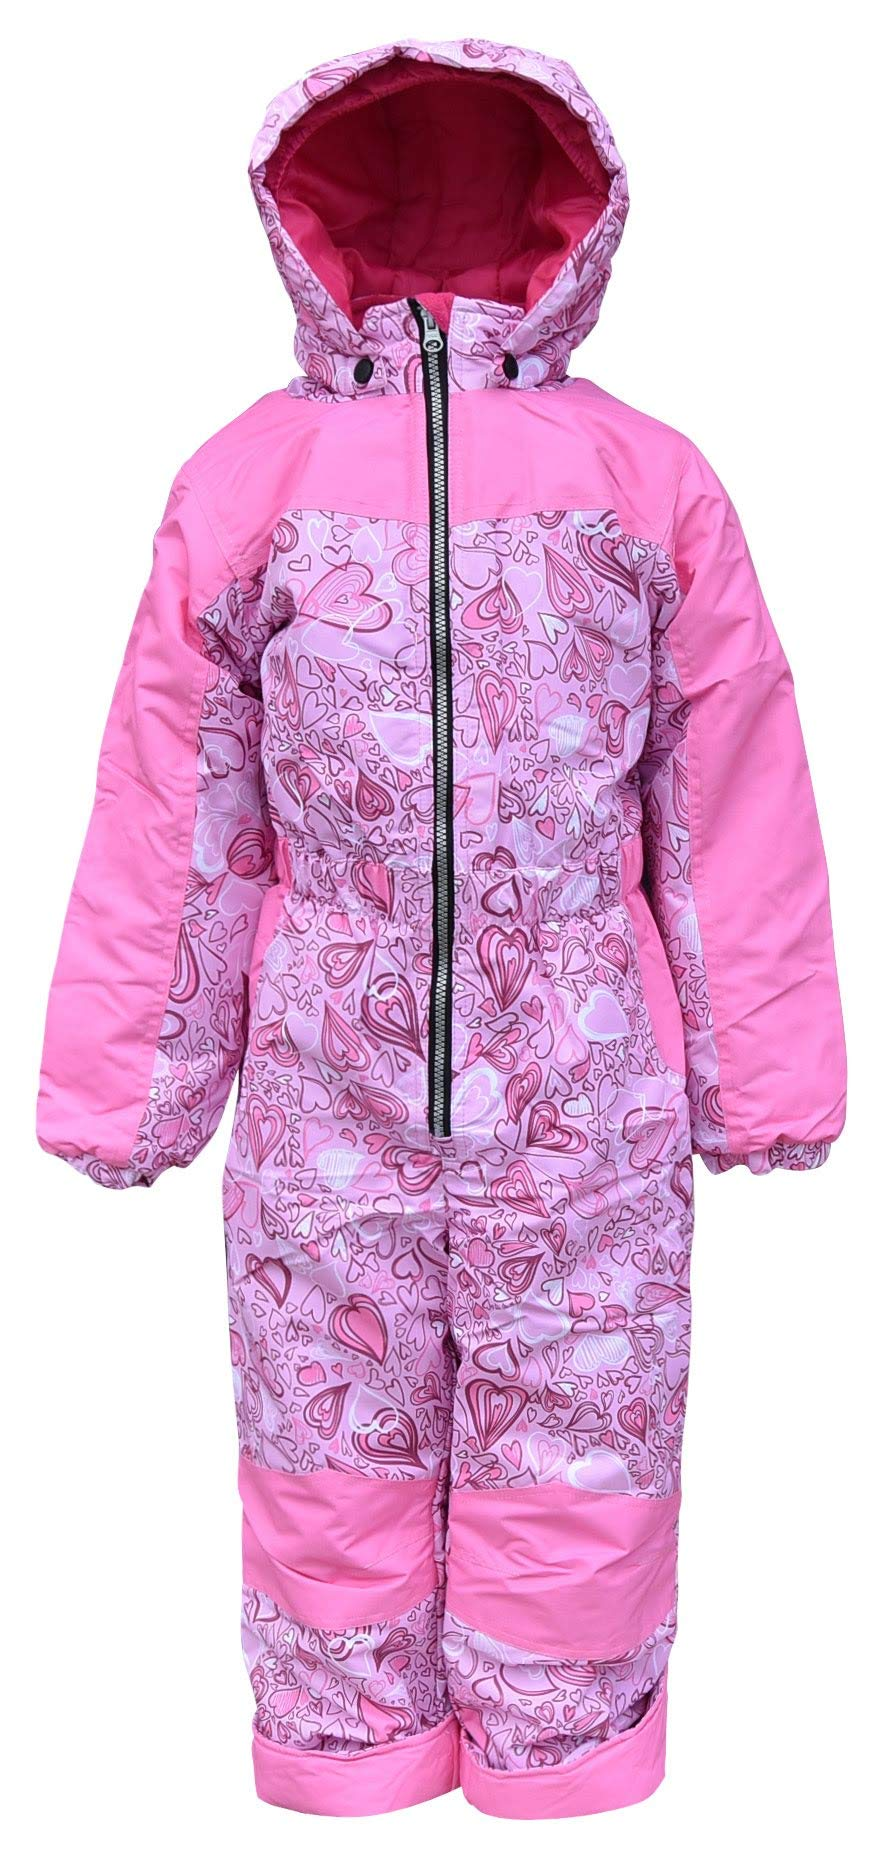 Snow Country Outerwear Toddler Girls 1 Piece Insulated Ski Snowsuit Coveralls (4T, Pink Hearts) by Snow Country Outerwear